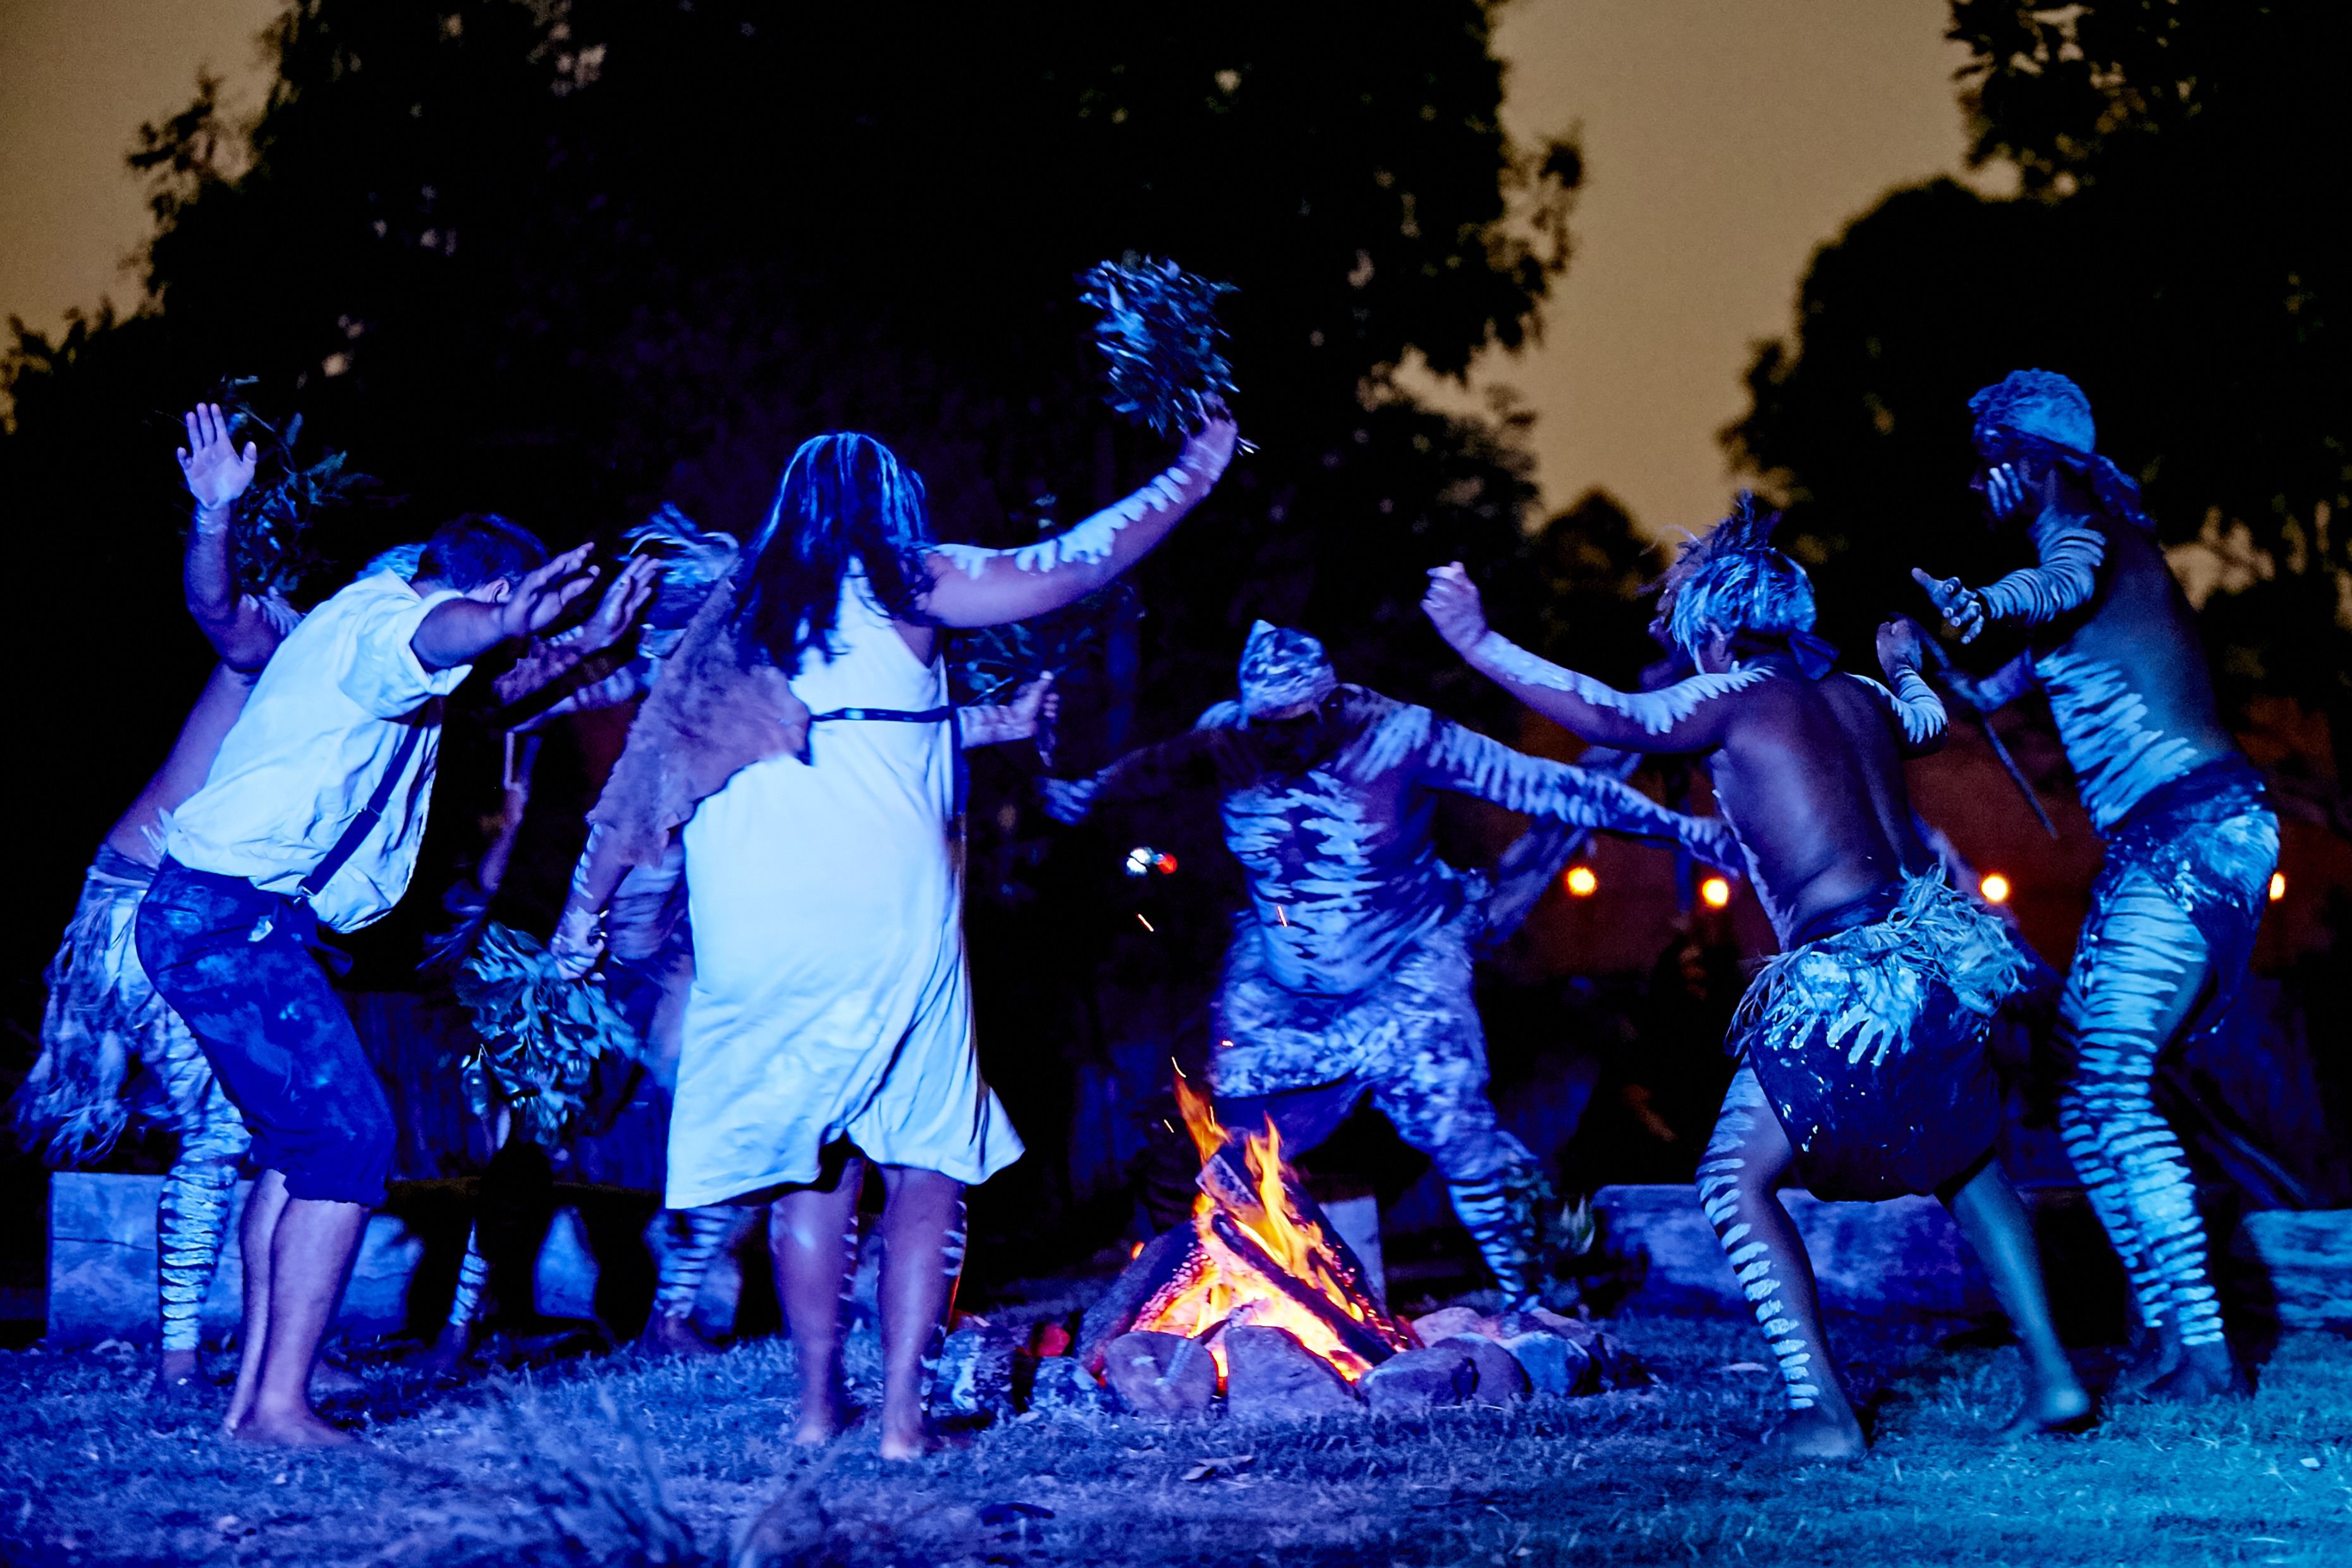 A powerful Corroboree (dance) during Spirits of the Red Sand